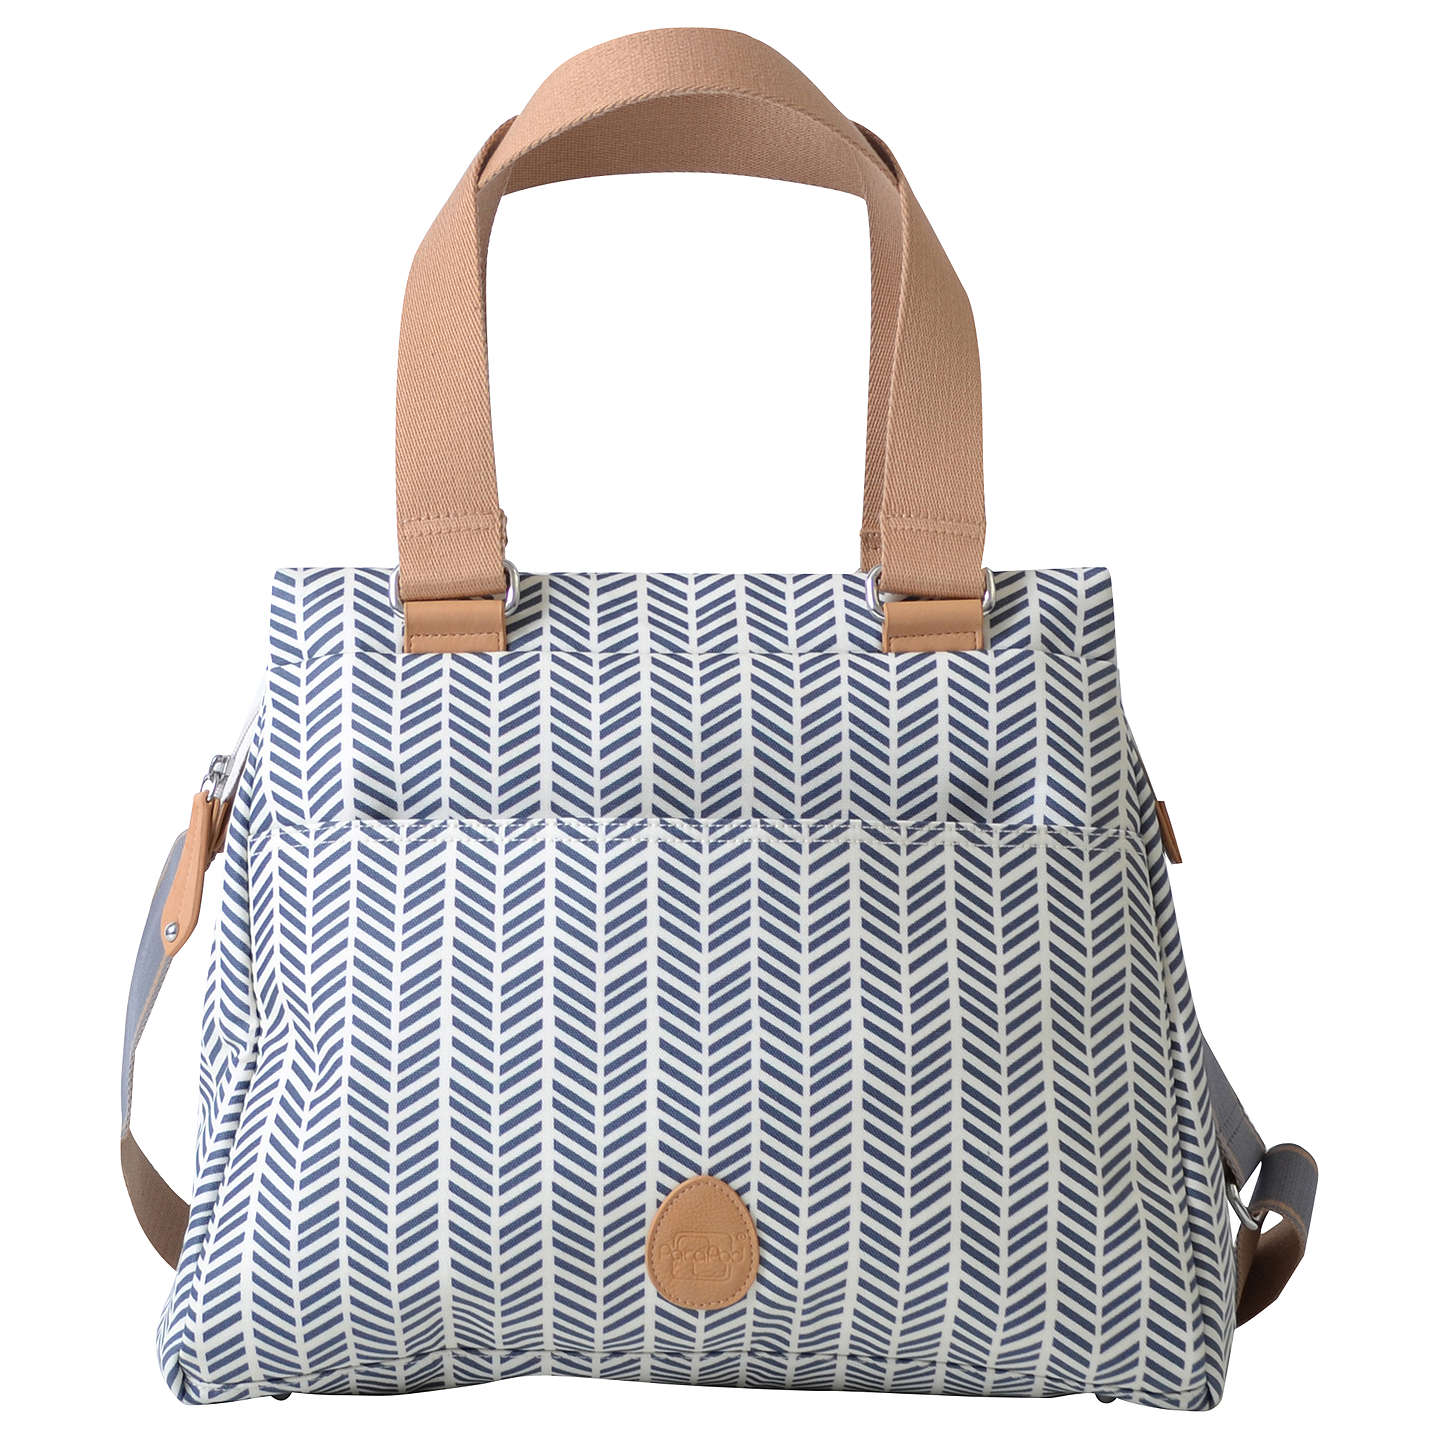 BuyPacaPod Richmond Herringbone Changing Bag, Navy Online at johnlewis.com